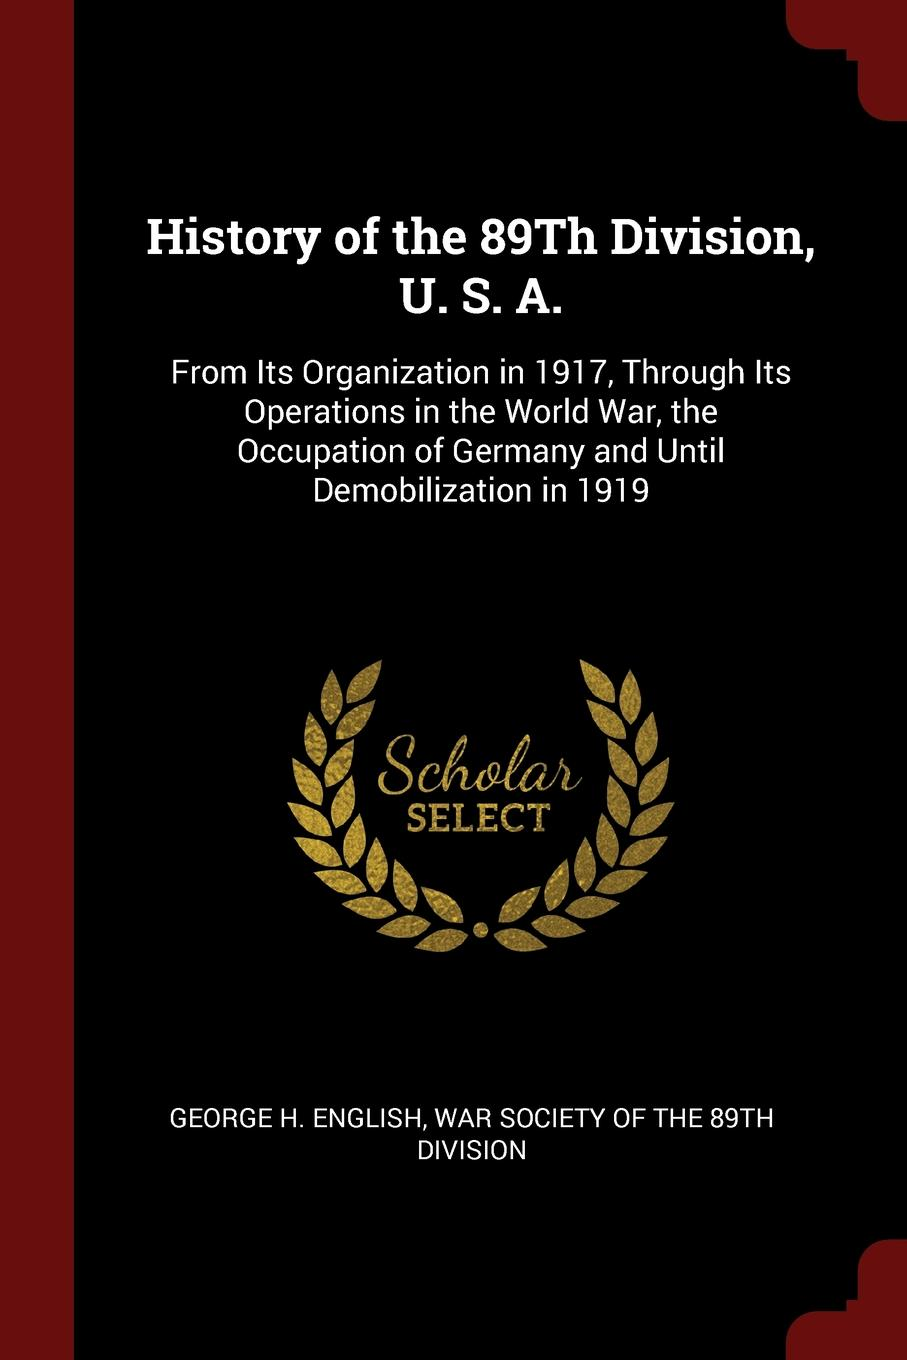 Фото - George H. English History of the 89Th Division, U. S. A. From Its Organization in 1917, Through Its Operations in the World War, the Occupation of Germany and Until Demobilization in 1919 history of the 89th division u s a from its organization in 1917 through its operations in the world war the occupation of germany and until demobilization in 1919